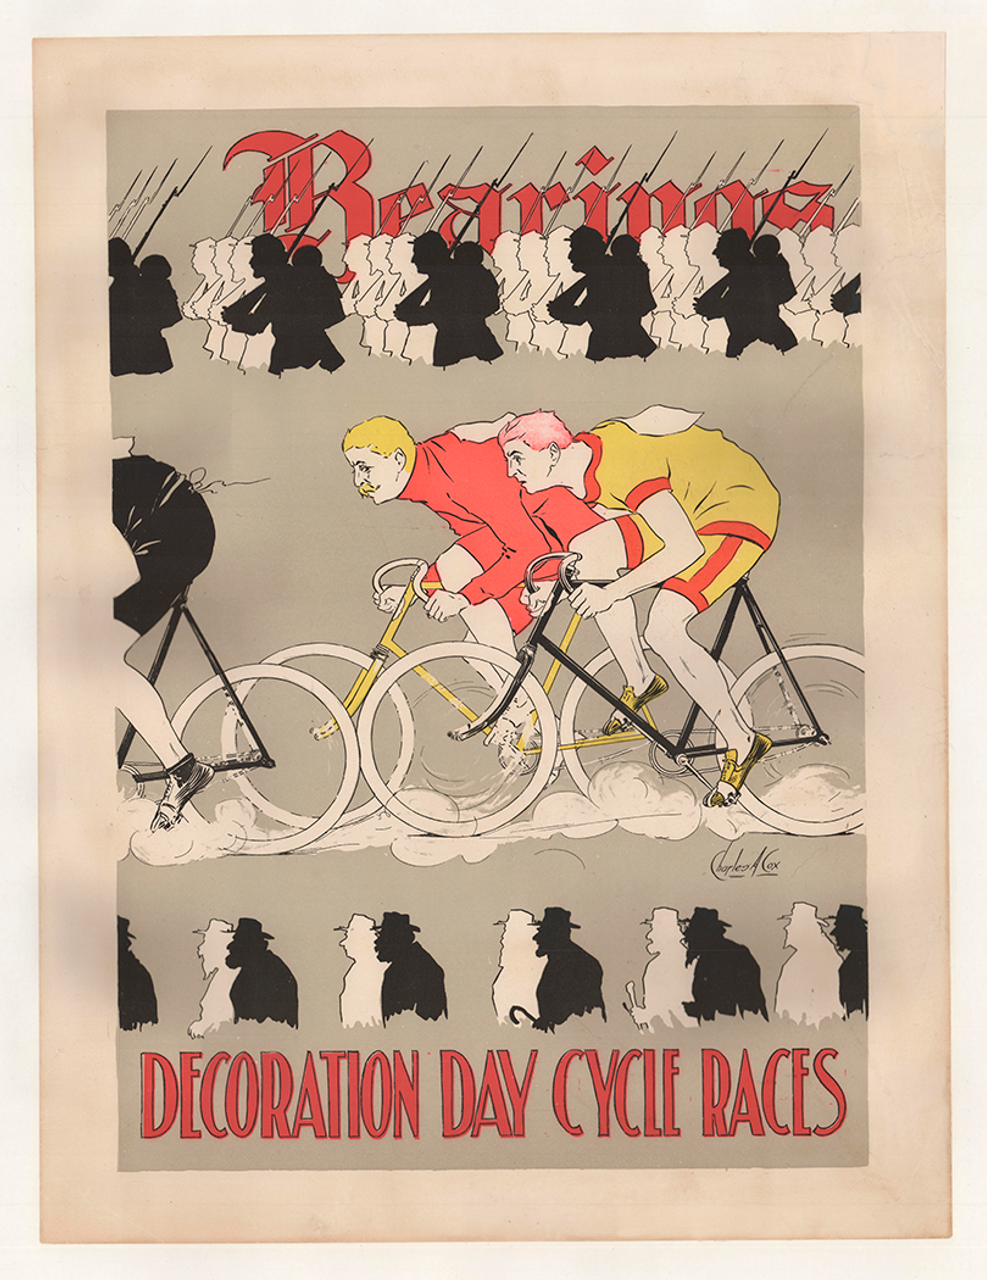 Bearings Decoration Day Races Original Vintage Bicycle Poster by Charles Cox